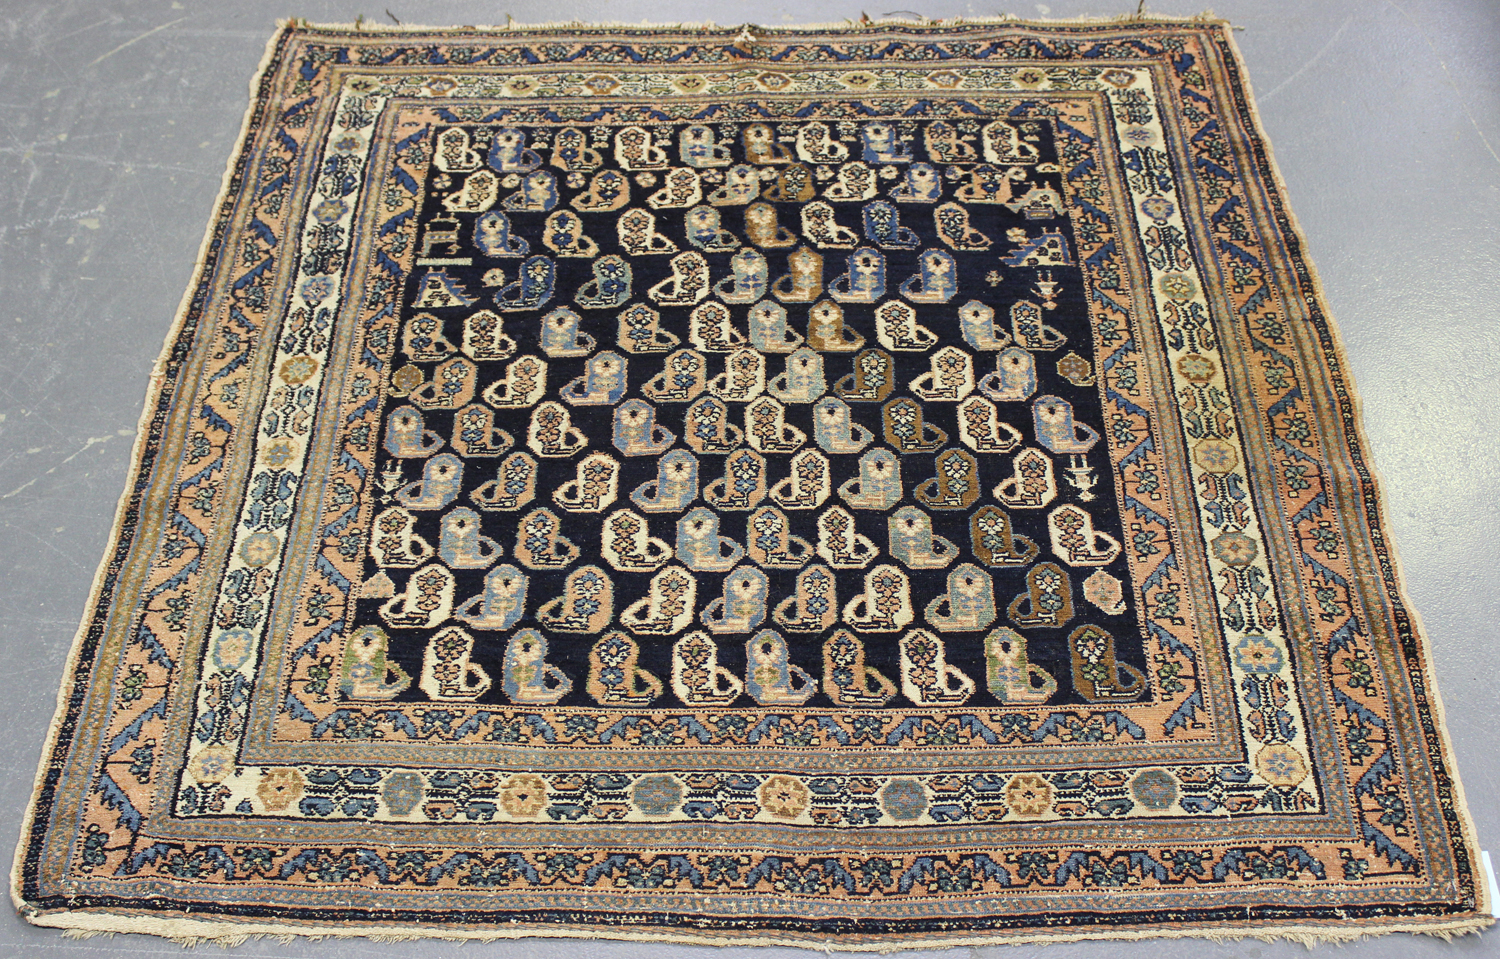 Lot 2923 - An Afshar rug, South-west Persia, early 20th century, the midnight blue field with overall boteh and